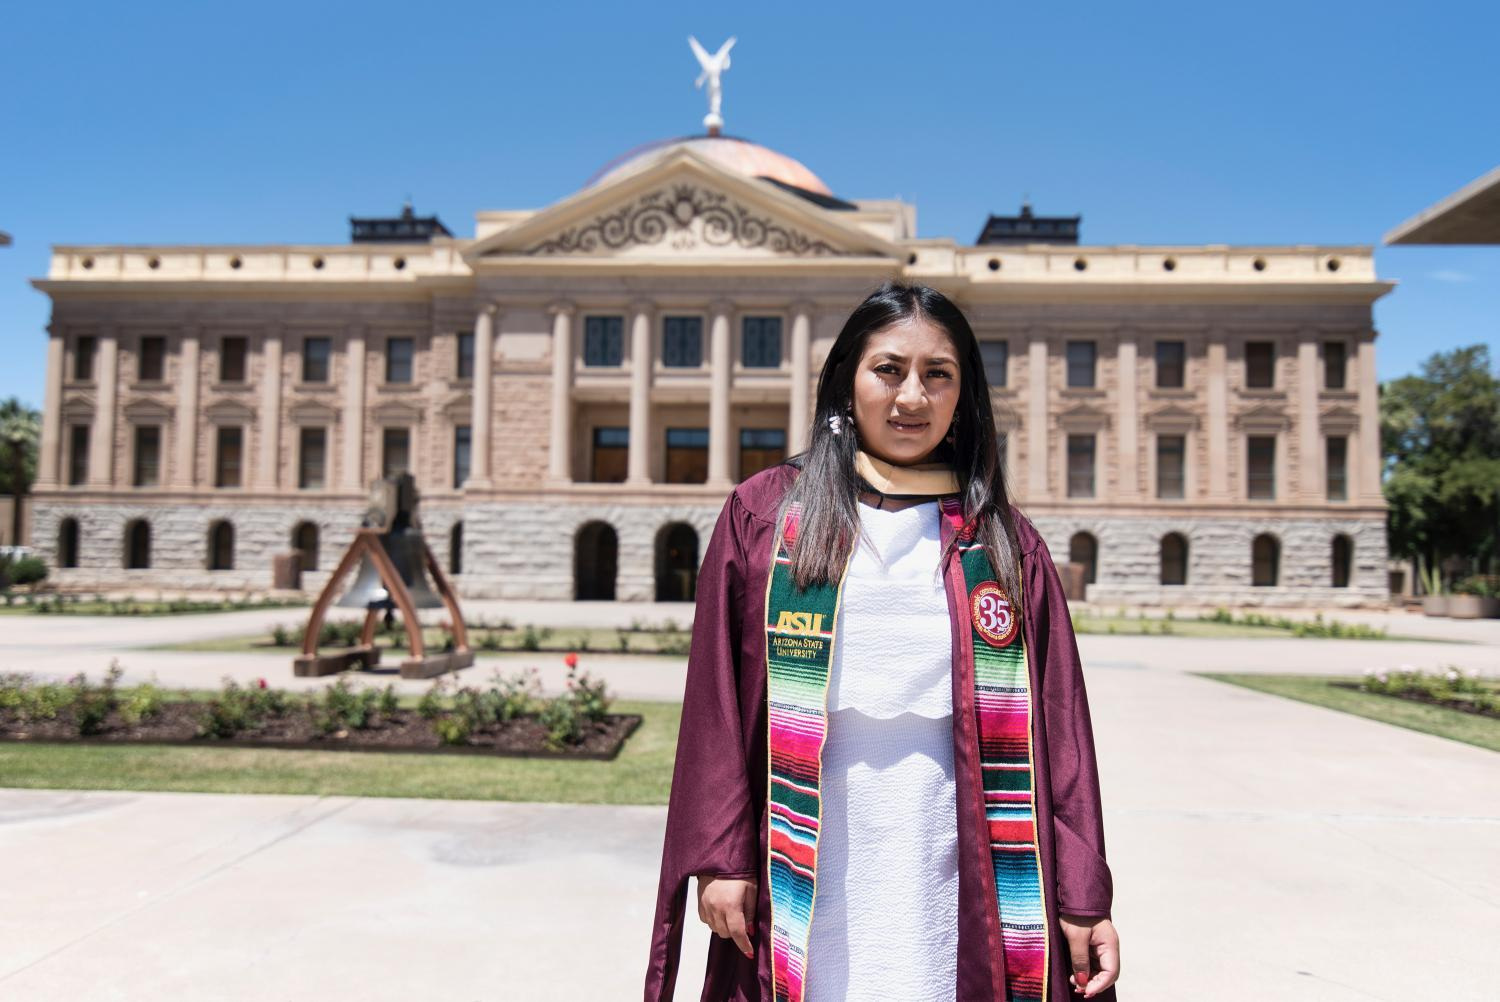 Blanca Sierra Reyes, 27, applied for DACA eight years ago and has renewed every two years since. She graduated with a master's degree in social work from ASU in spring 2019, an achievement she said would not have been possible without DACA.